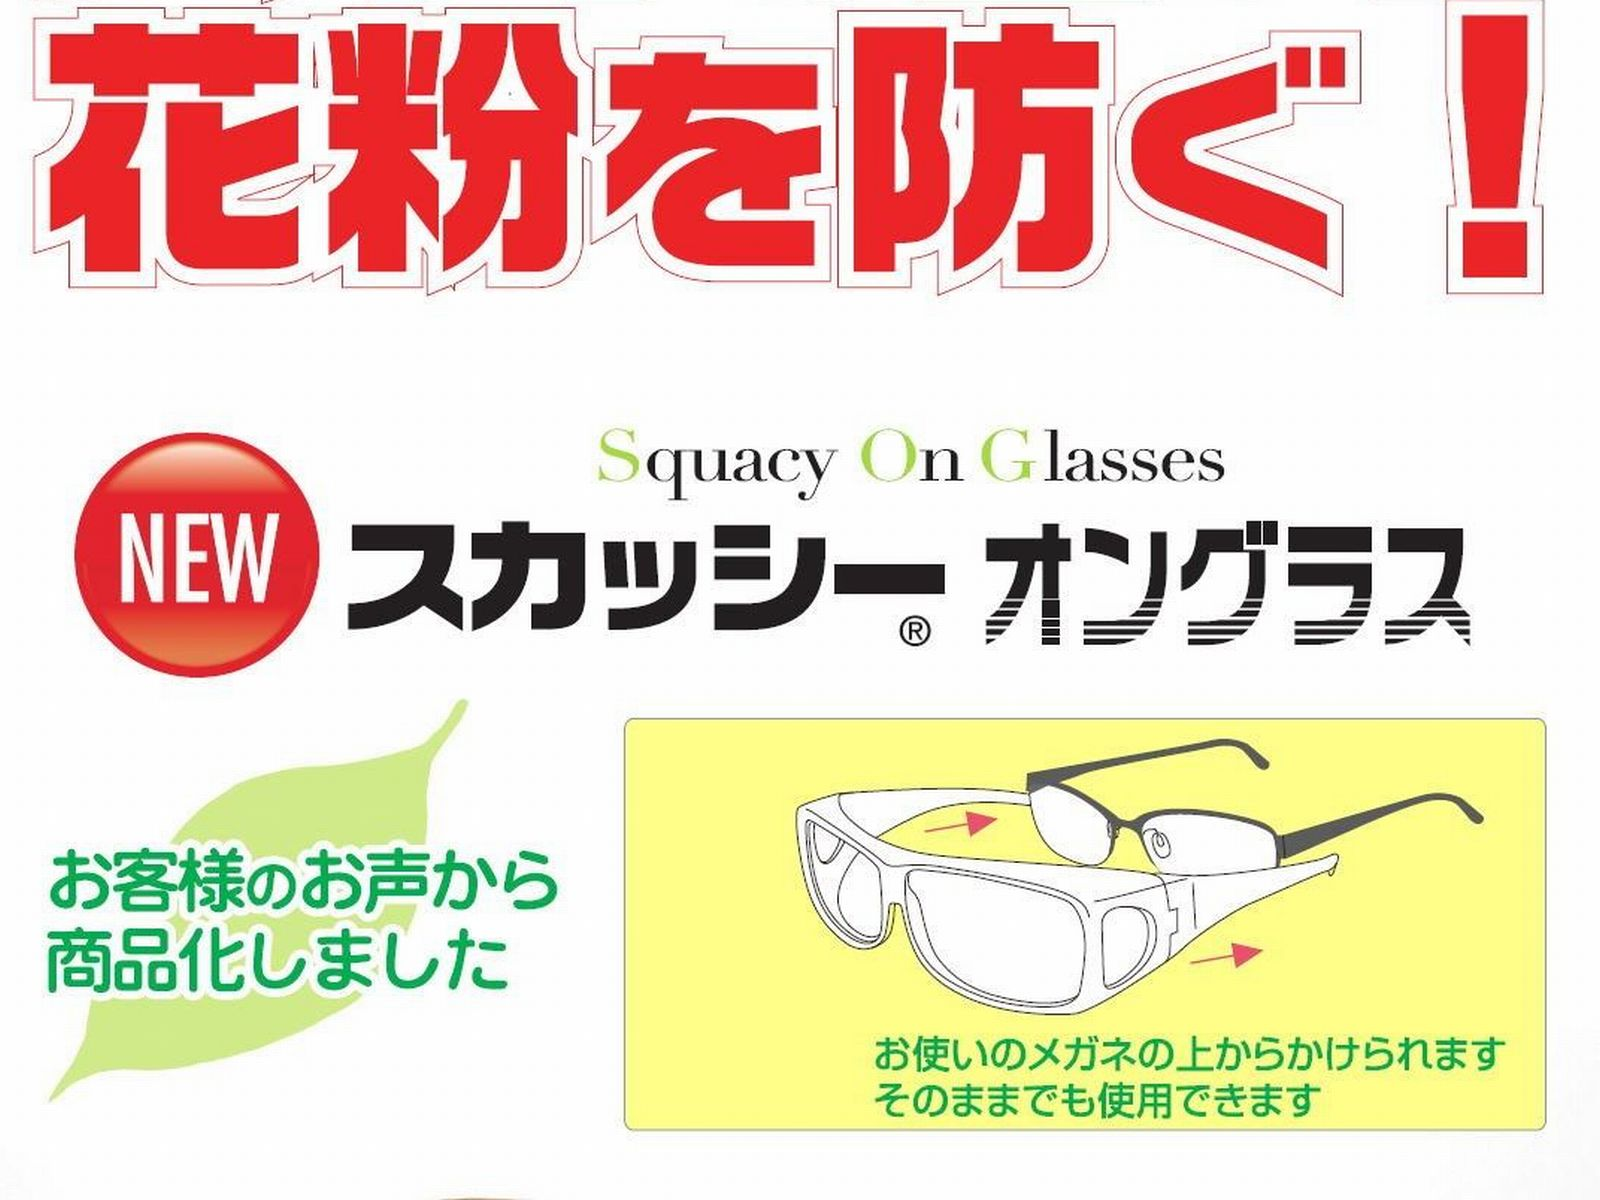 Squacy-on-glasses